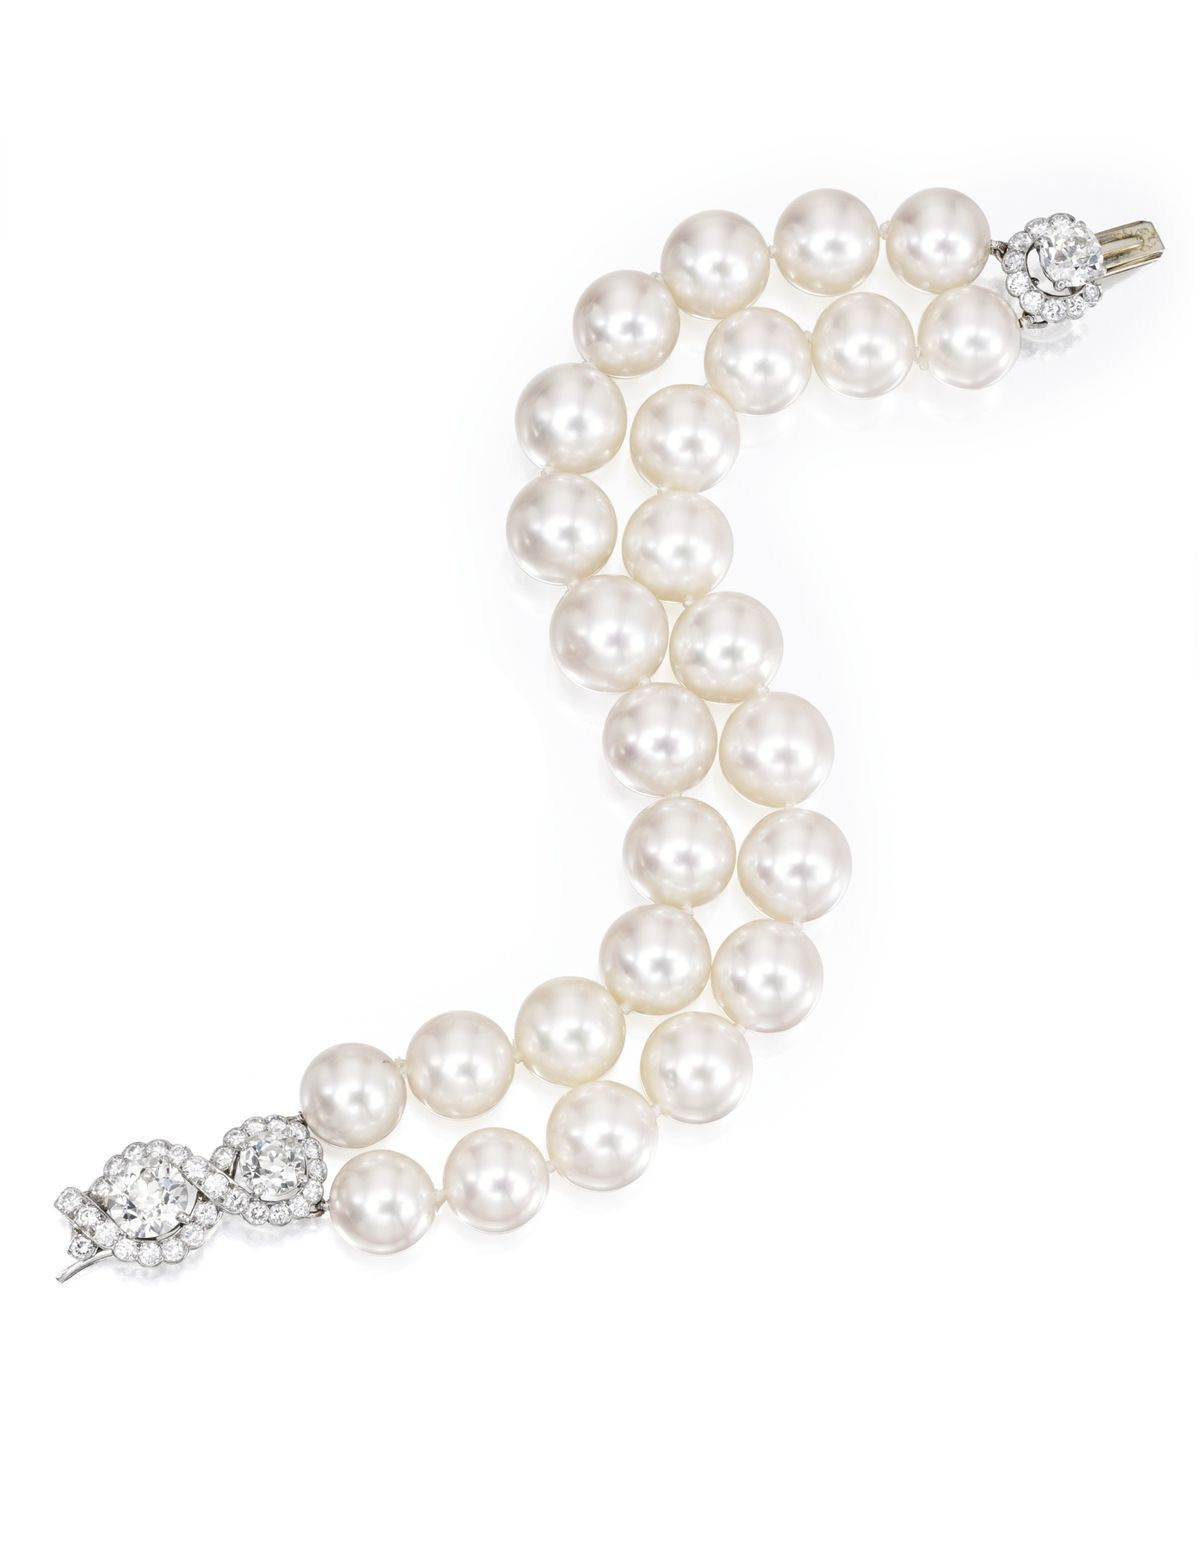 gemologist gia pearl by jewel pin graduate mira designed jeweler gulati necklace pearls